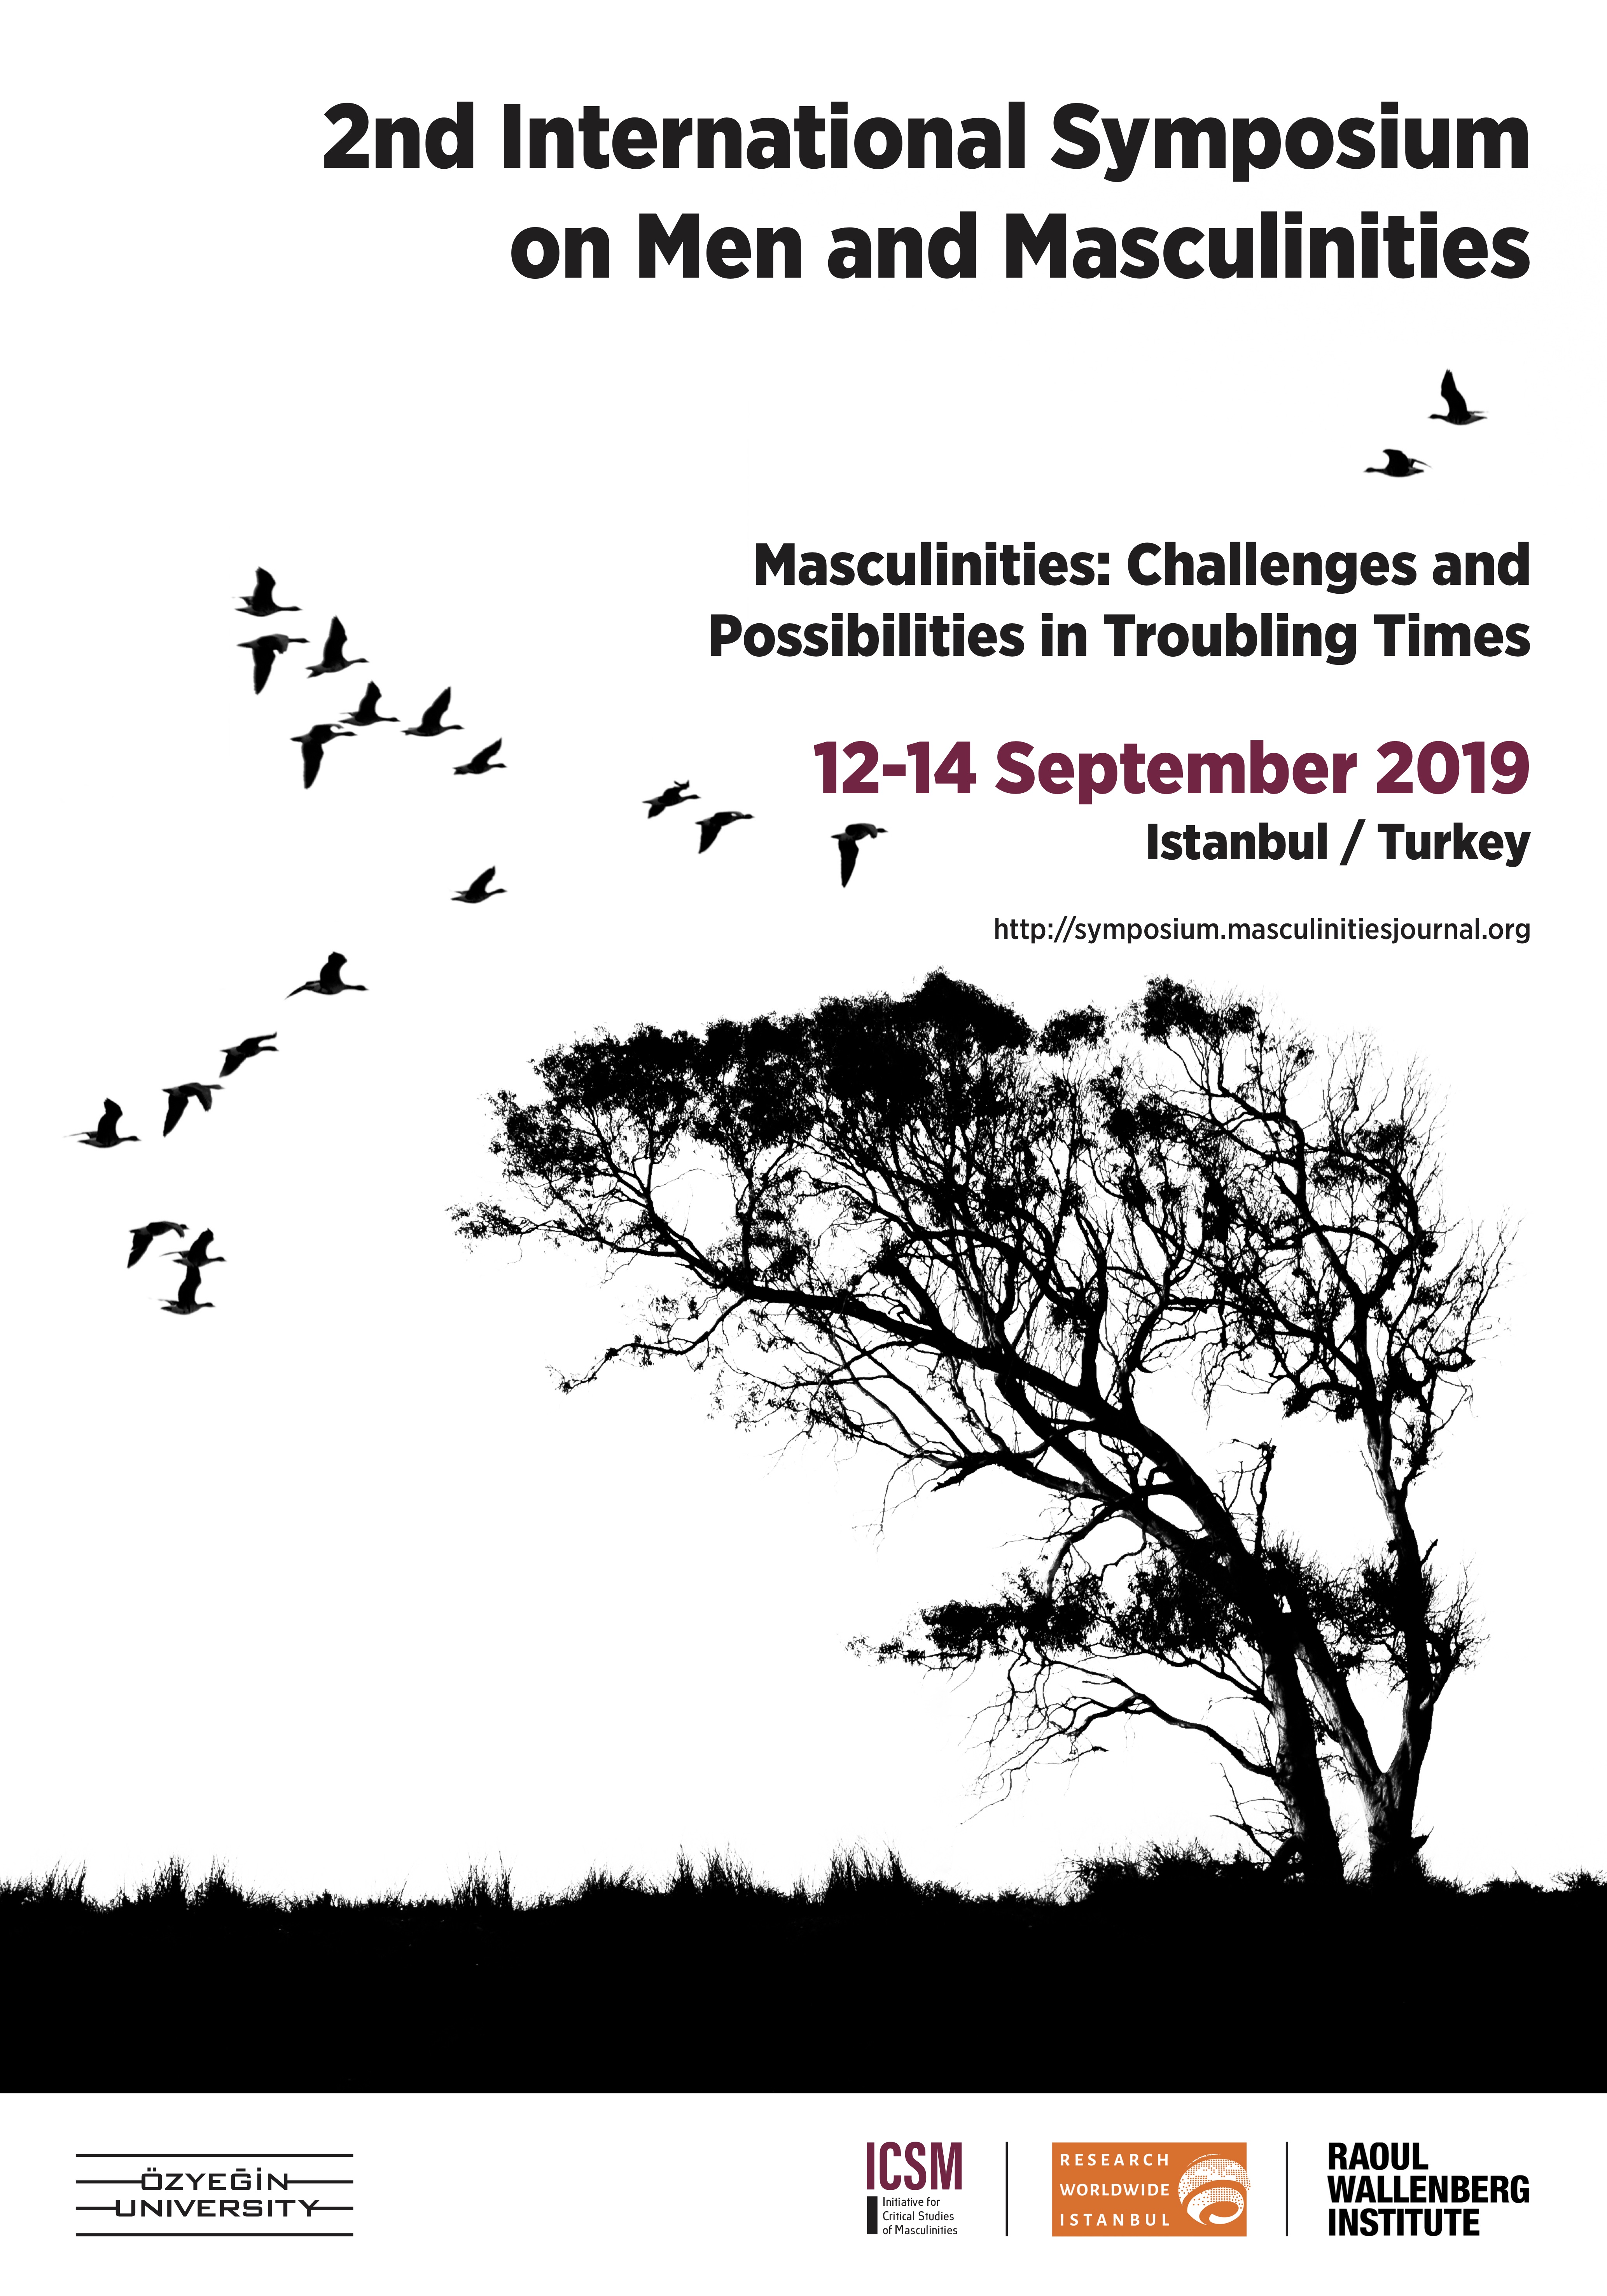 2nd International Symposium on Men and Masculinities